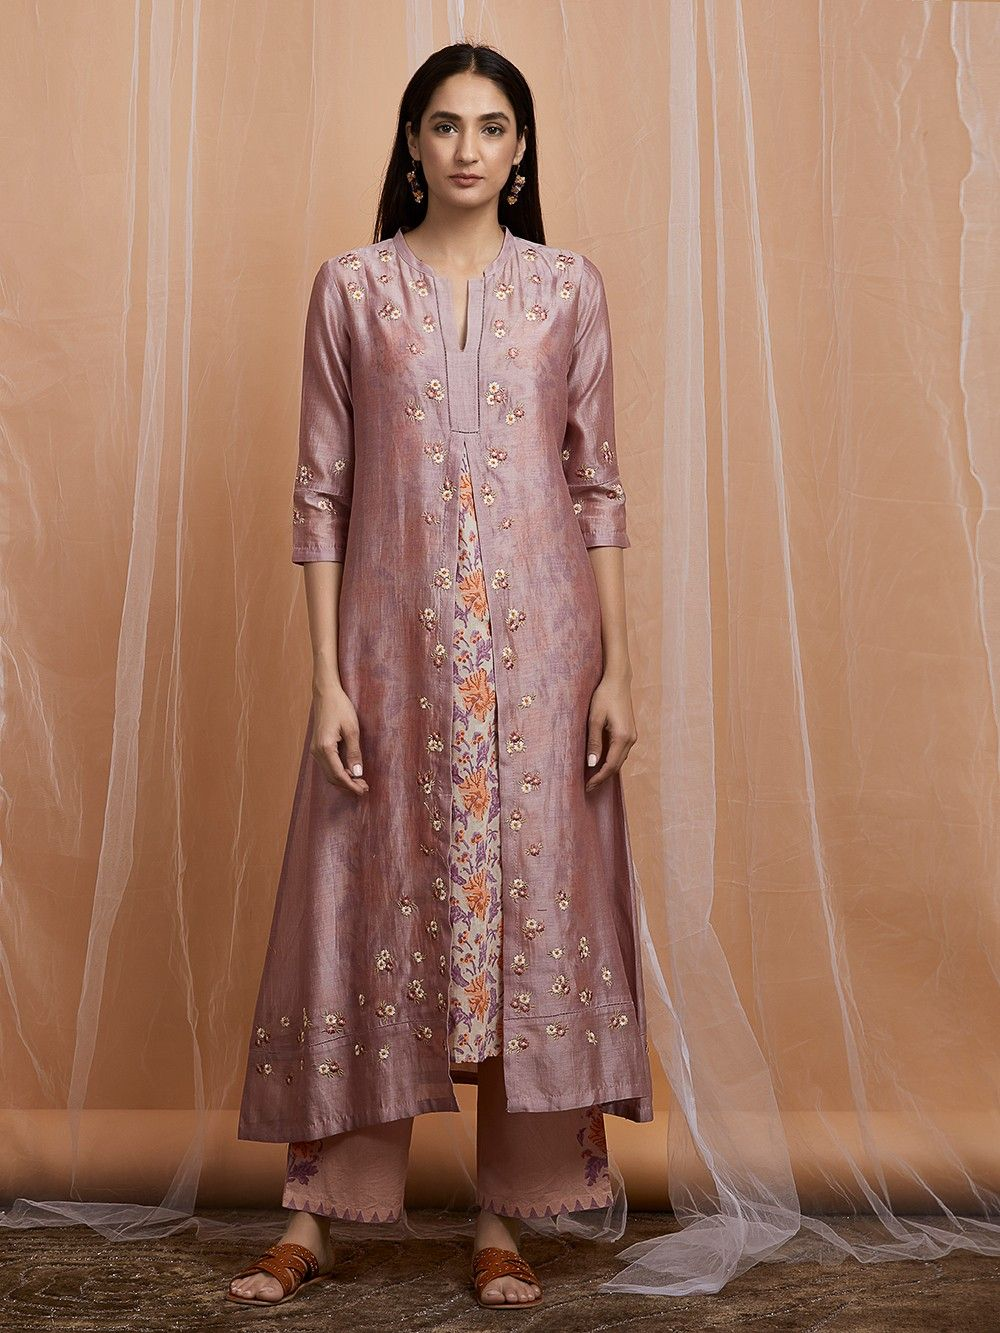 aa1a0a1cd1 Buy Onion Pink Thread Embroidered Chanderi Kurta with Cotton Hand ...